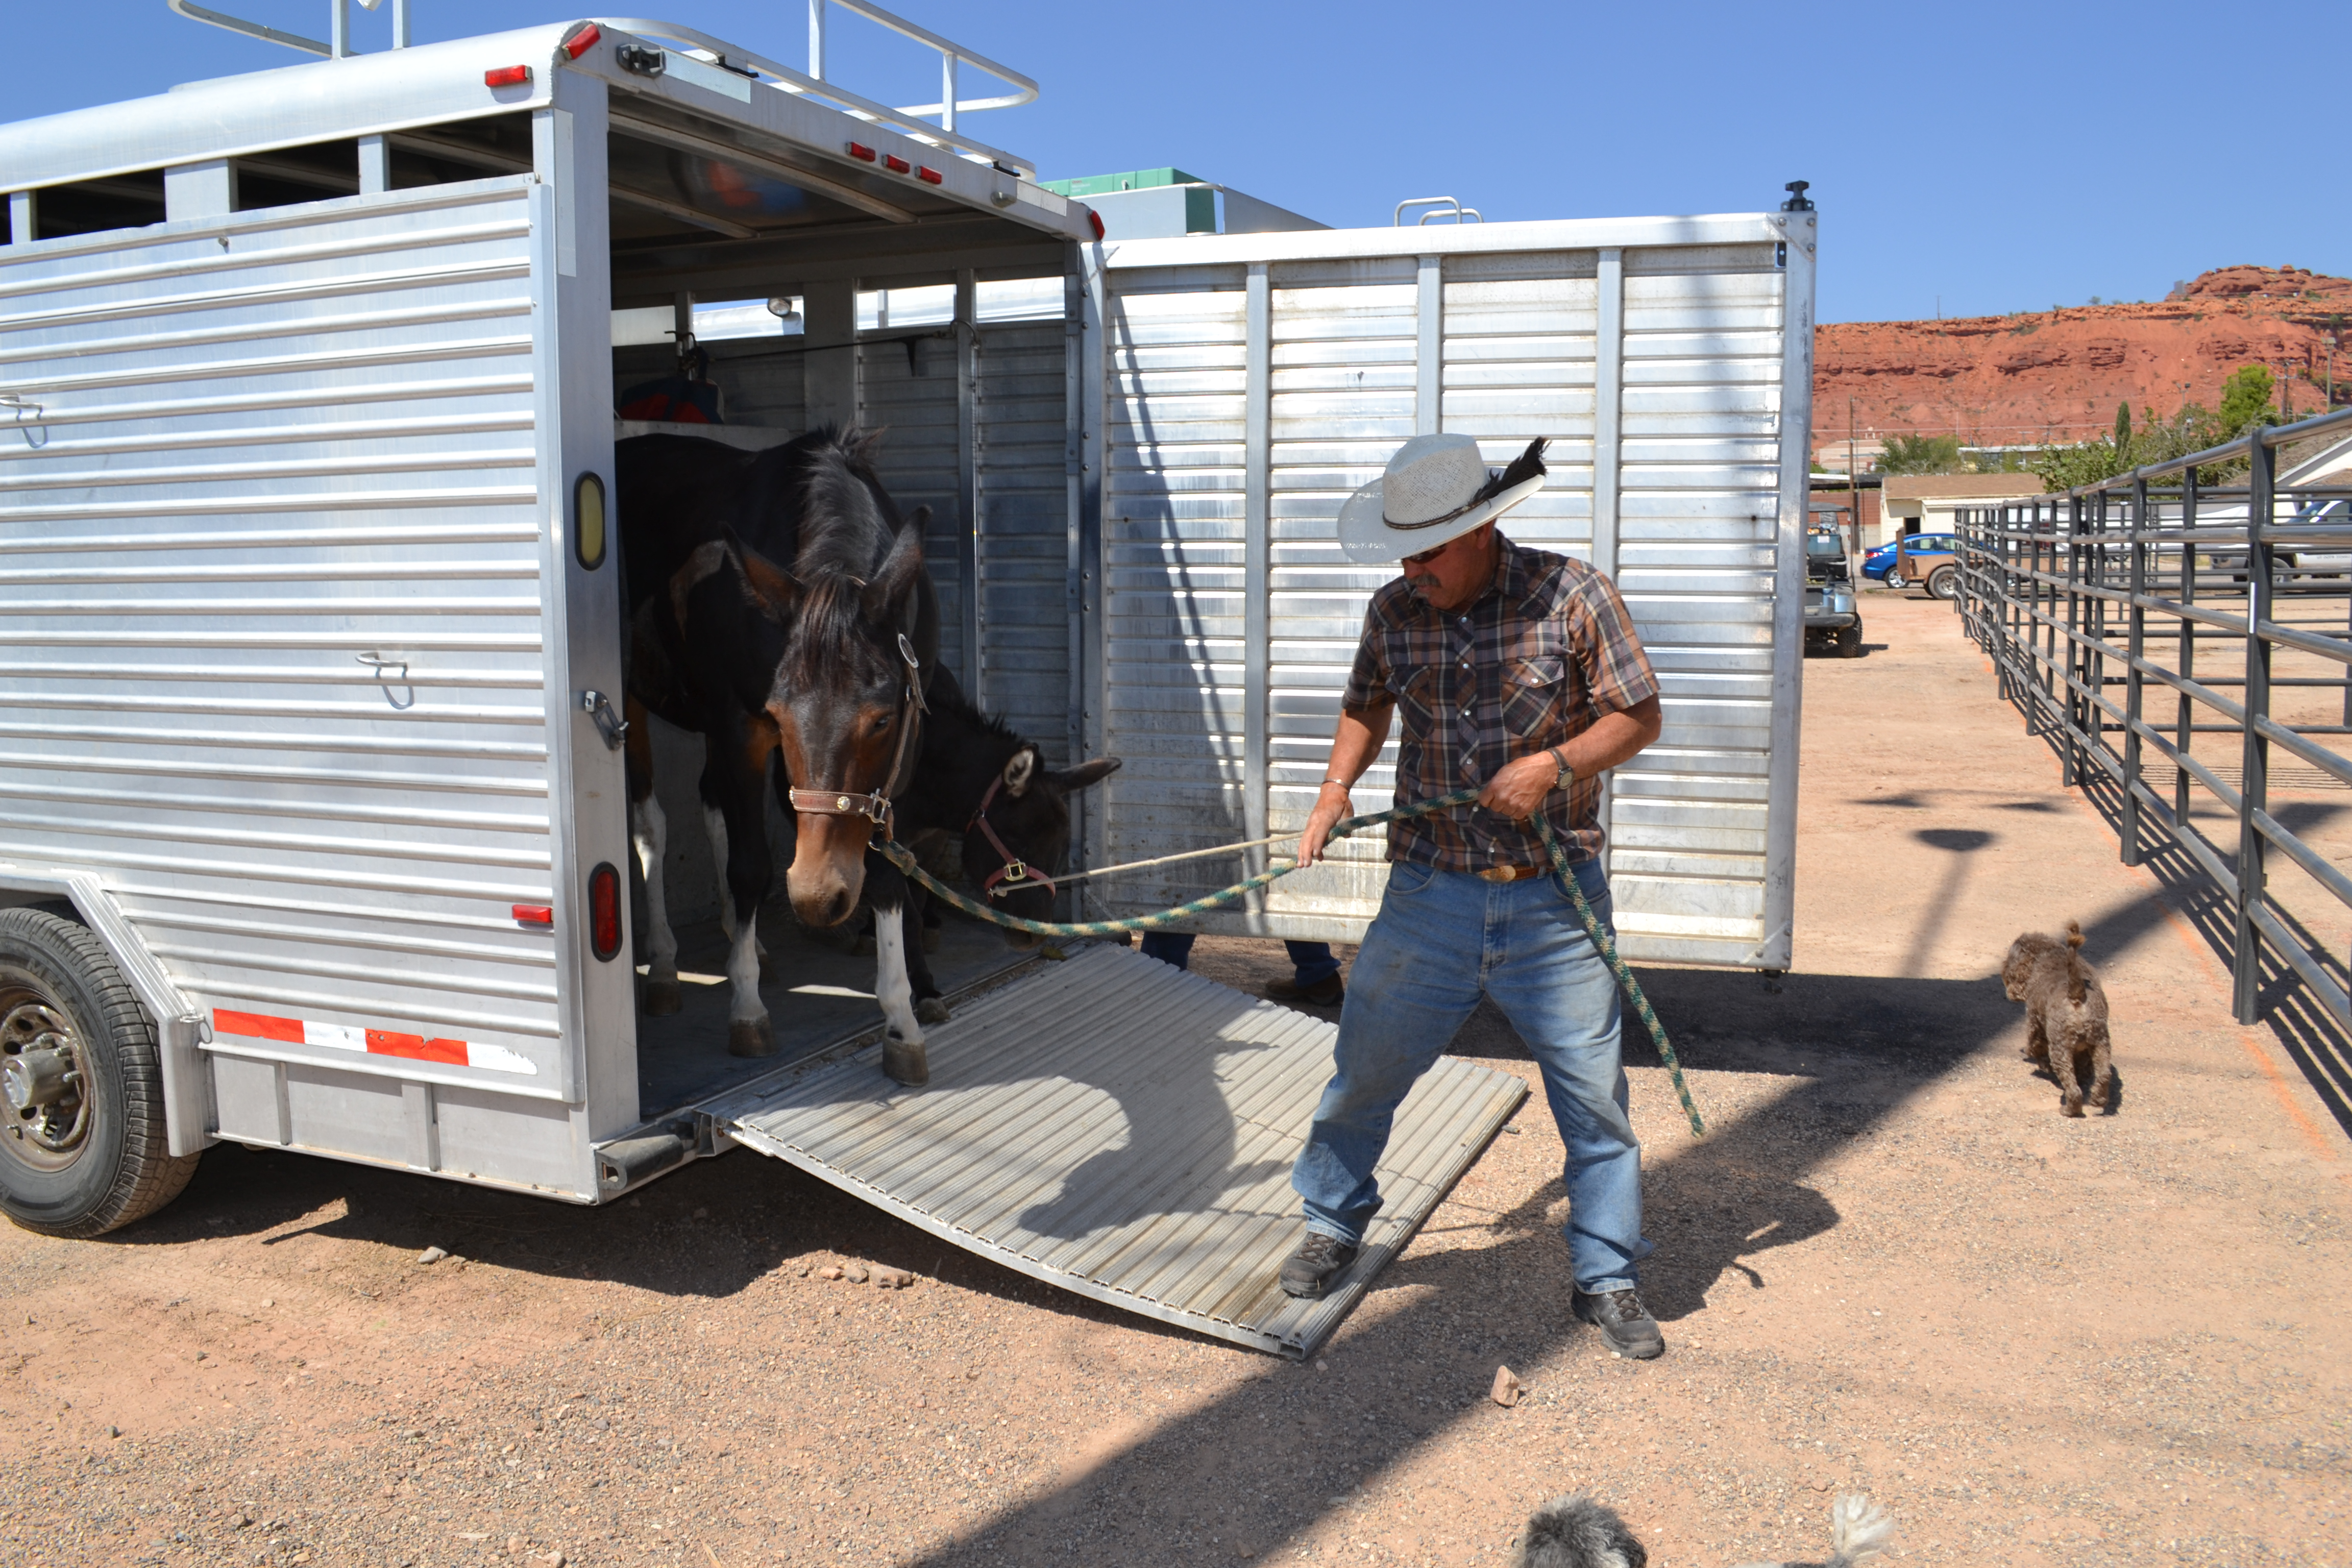 Randee Munns was the first arrival to unload stock at the Dixie Sunbowl ahead of the weekend's Dixie Roundup Rodeo, St. George, Utah, Sept. 12, 2016   Photo by Joseph Witham, St George News